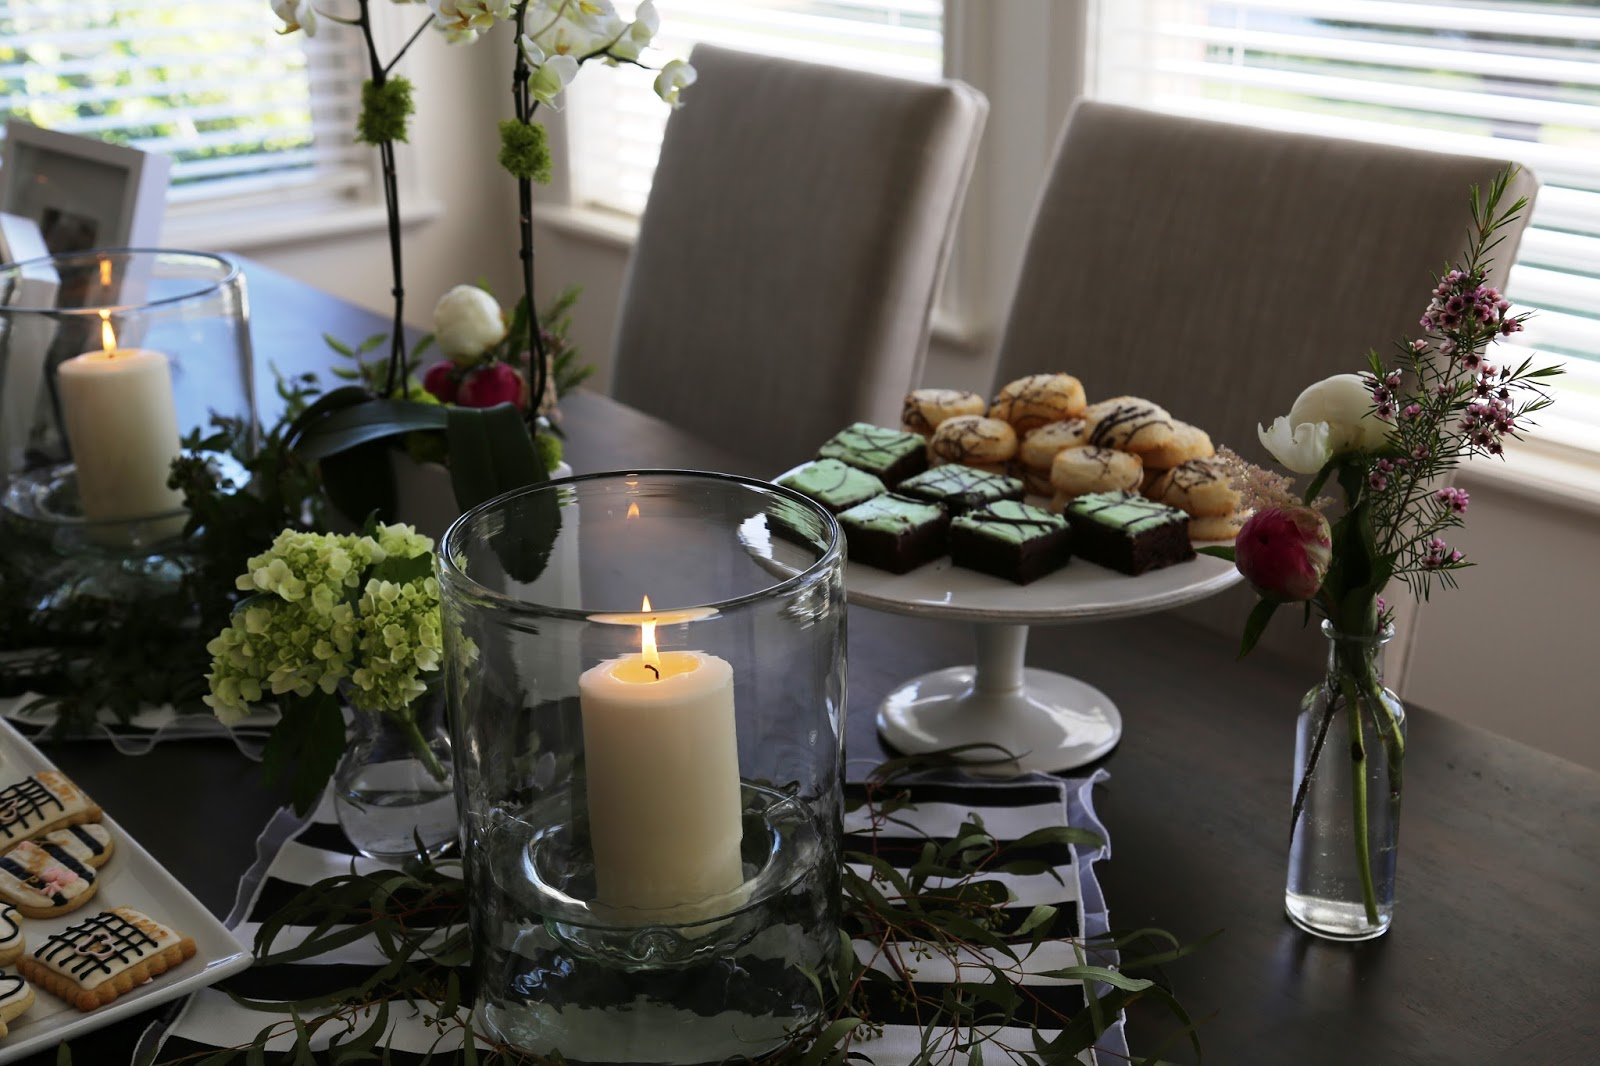 Decorated Mantel Ideas For Hosting The Perfect Bridal Shower